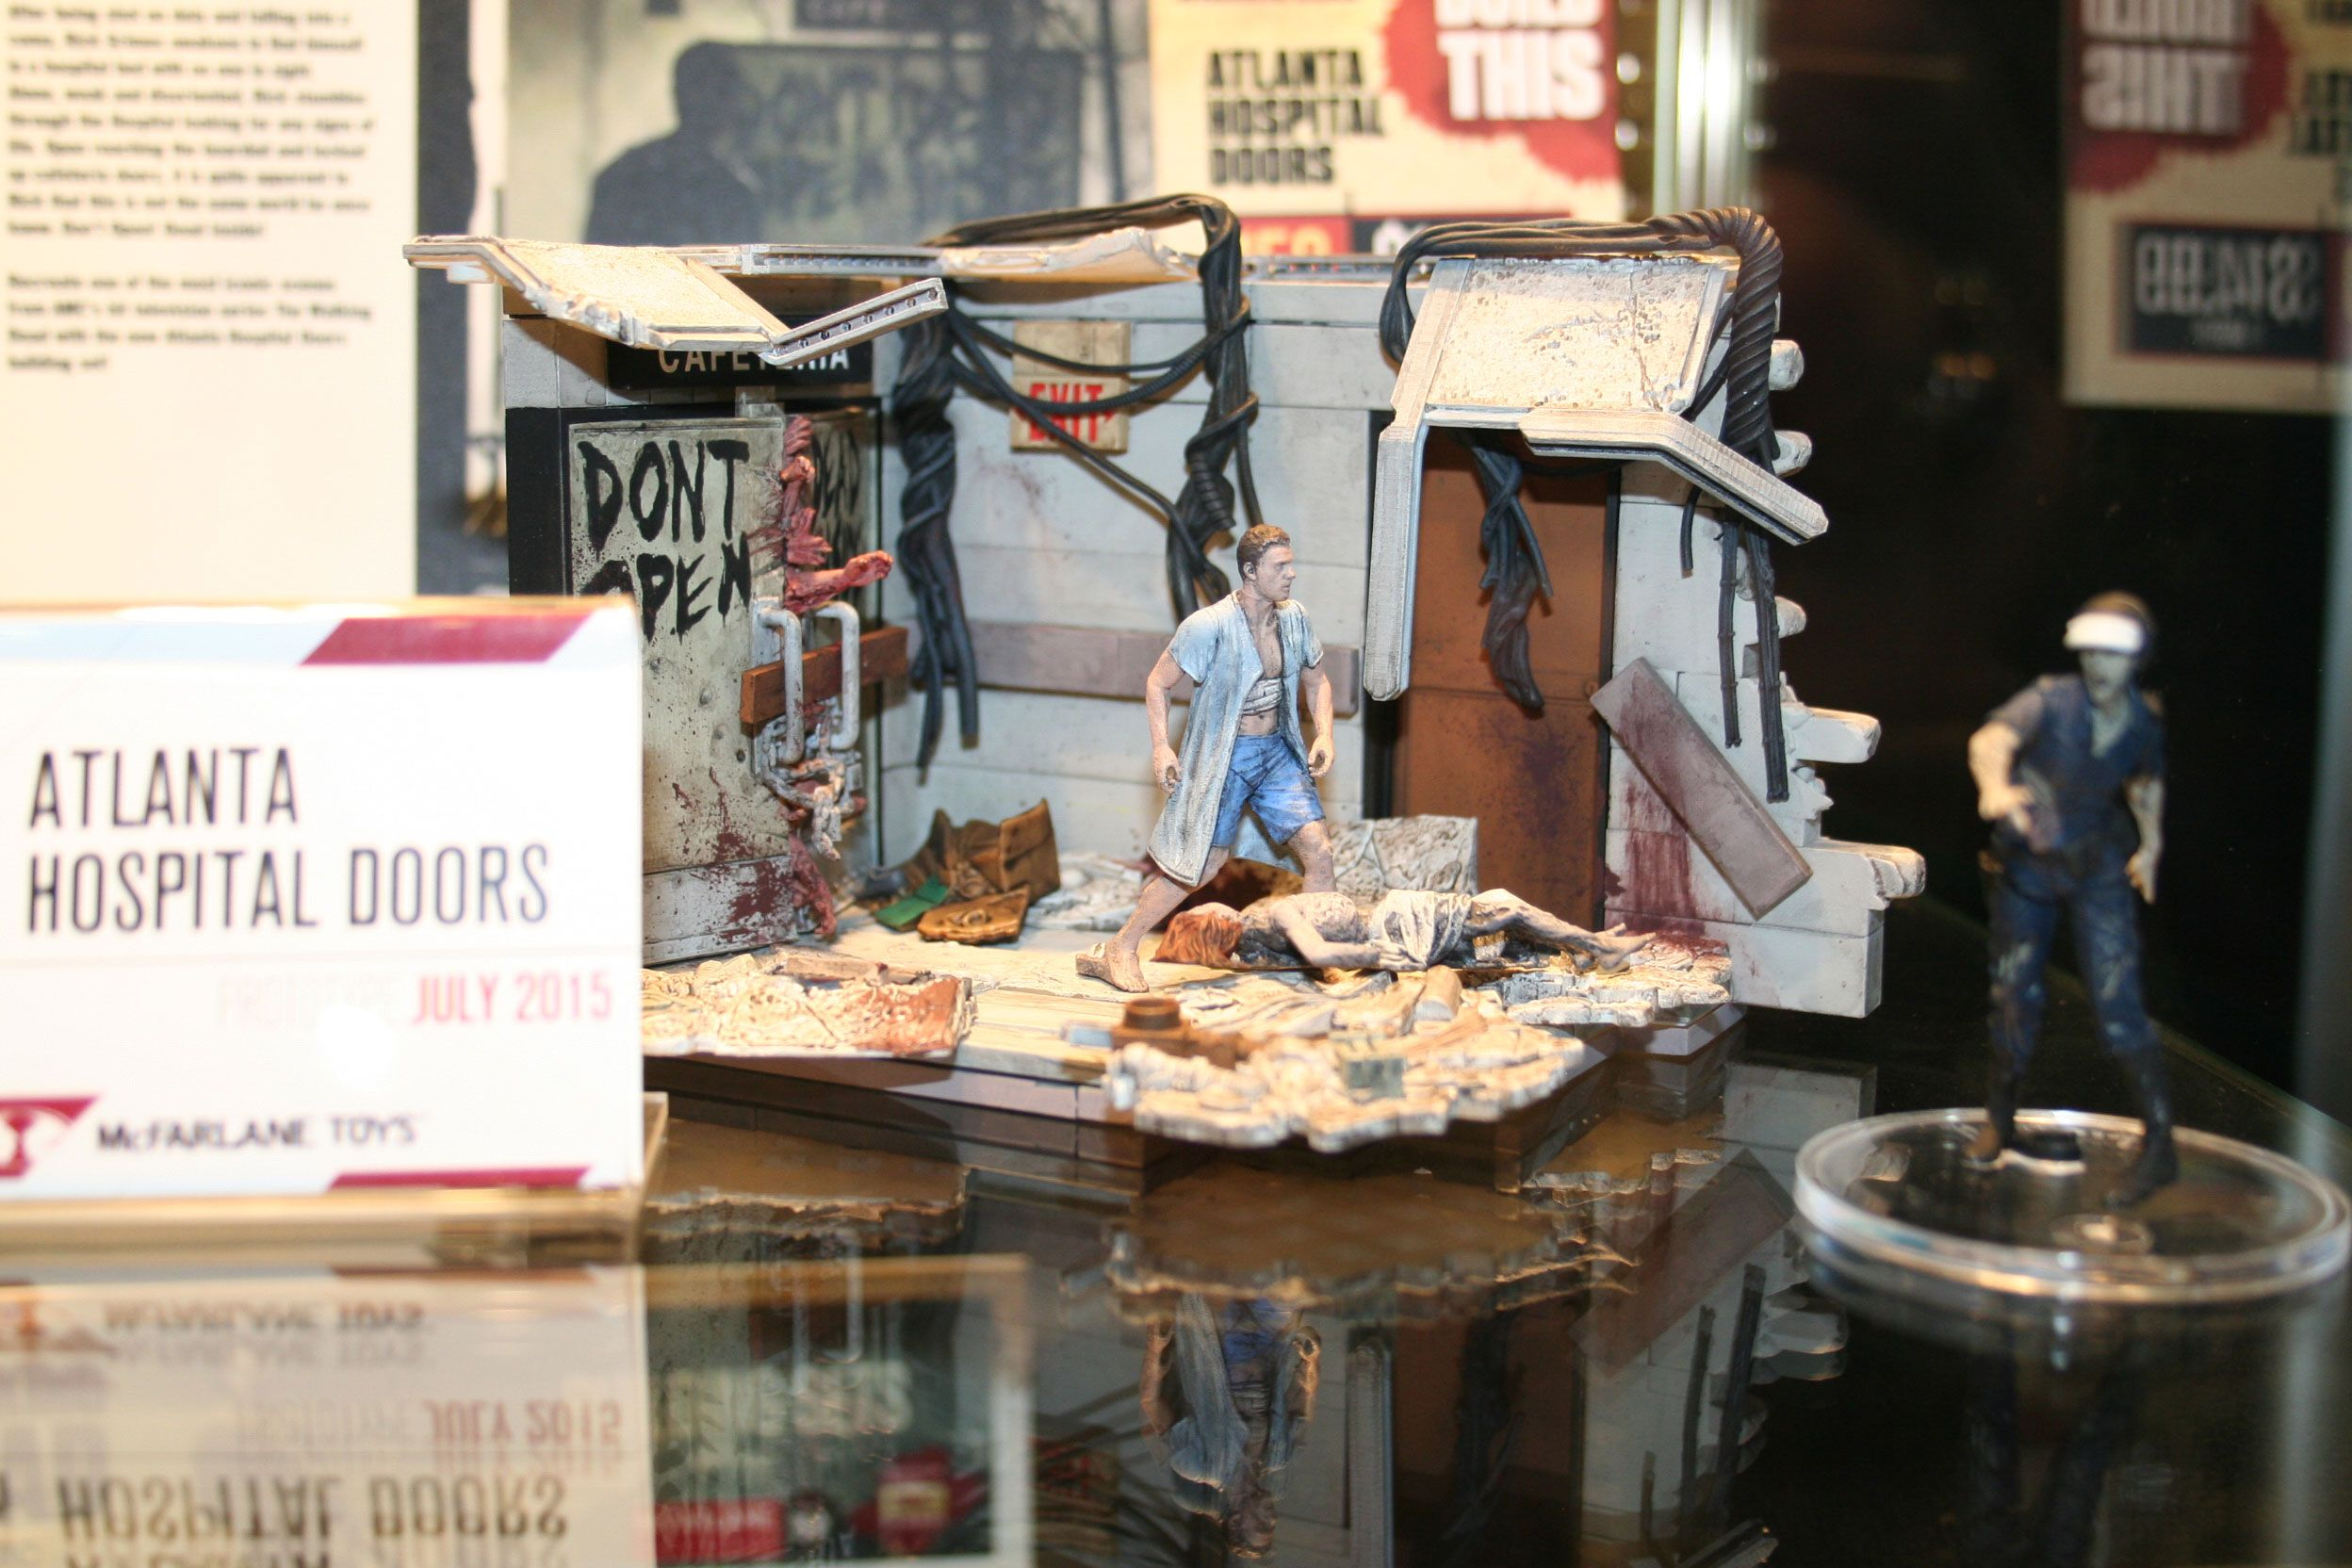 New The Walking Dead Toys And Building Sets Unveiled At